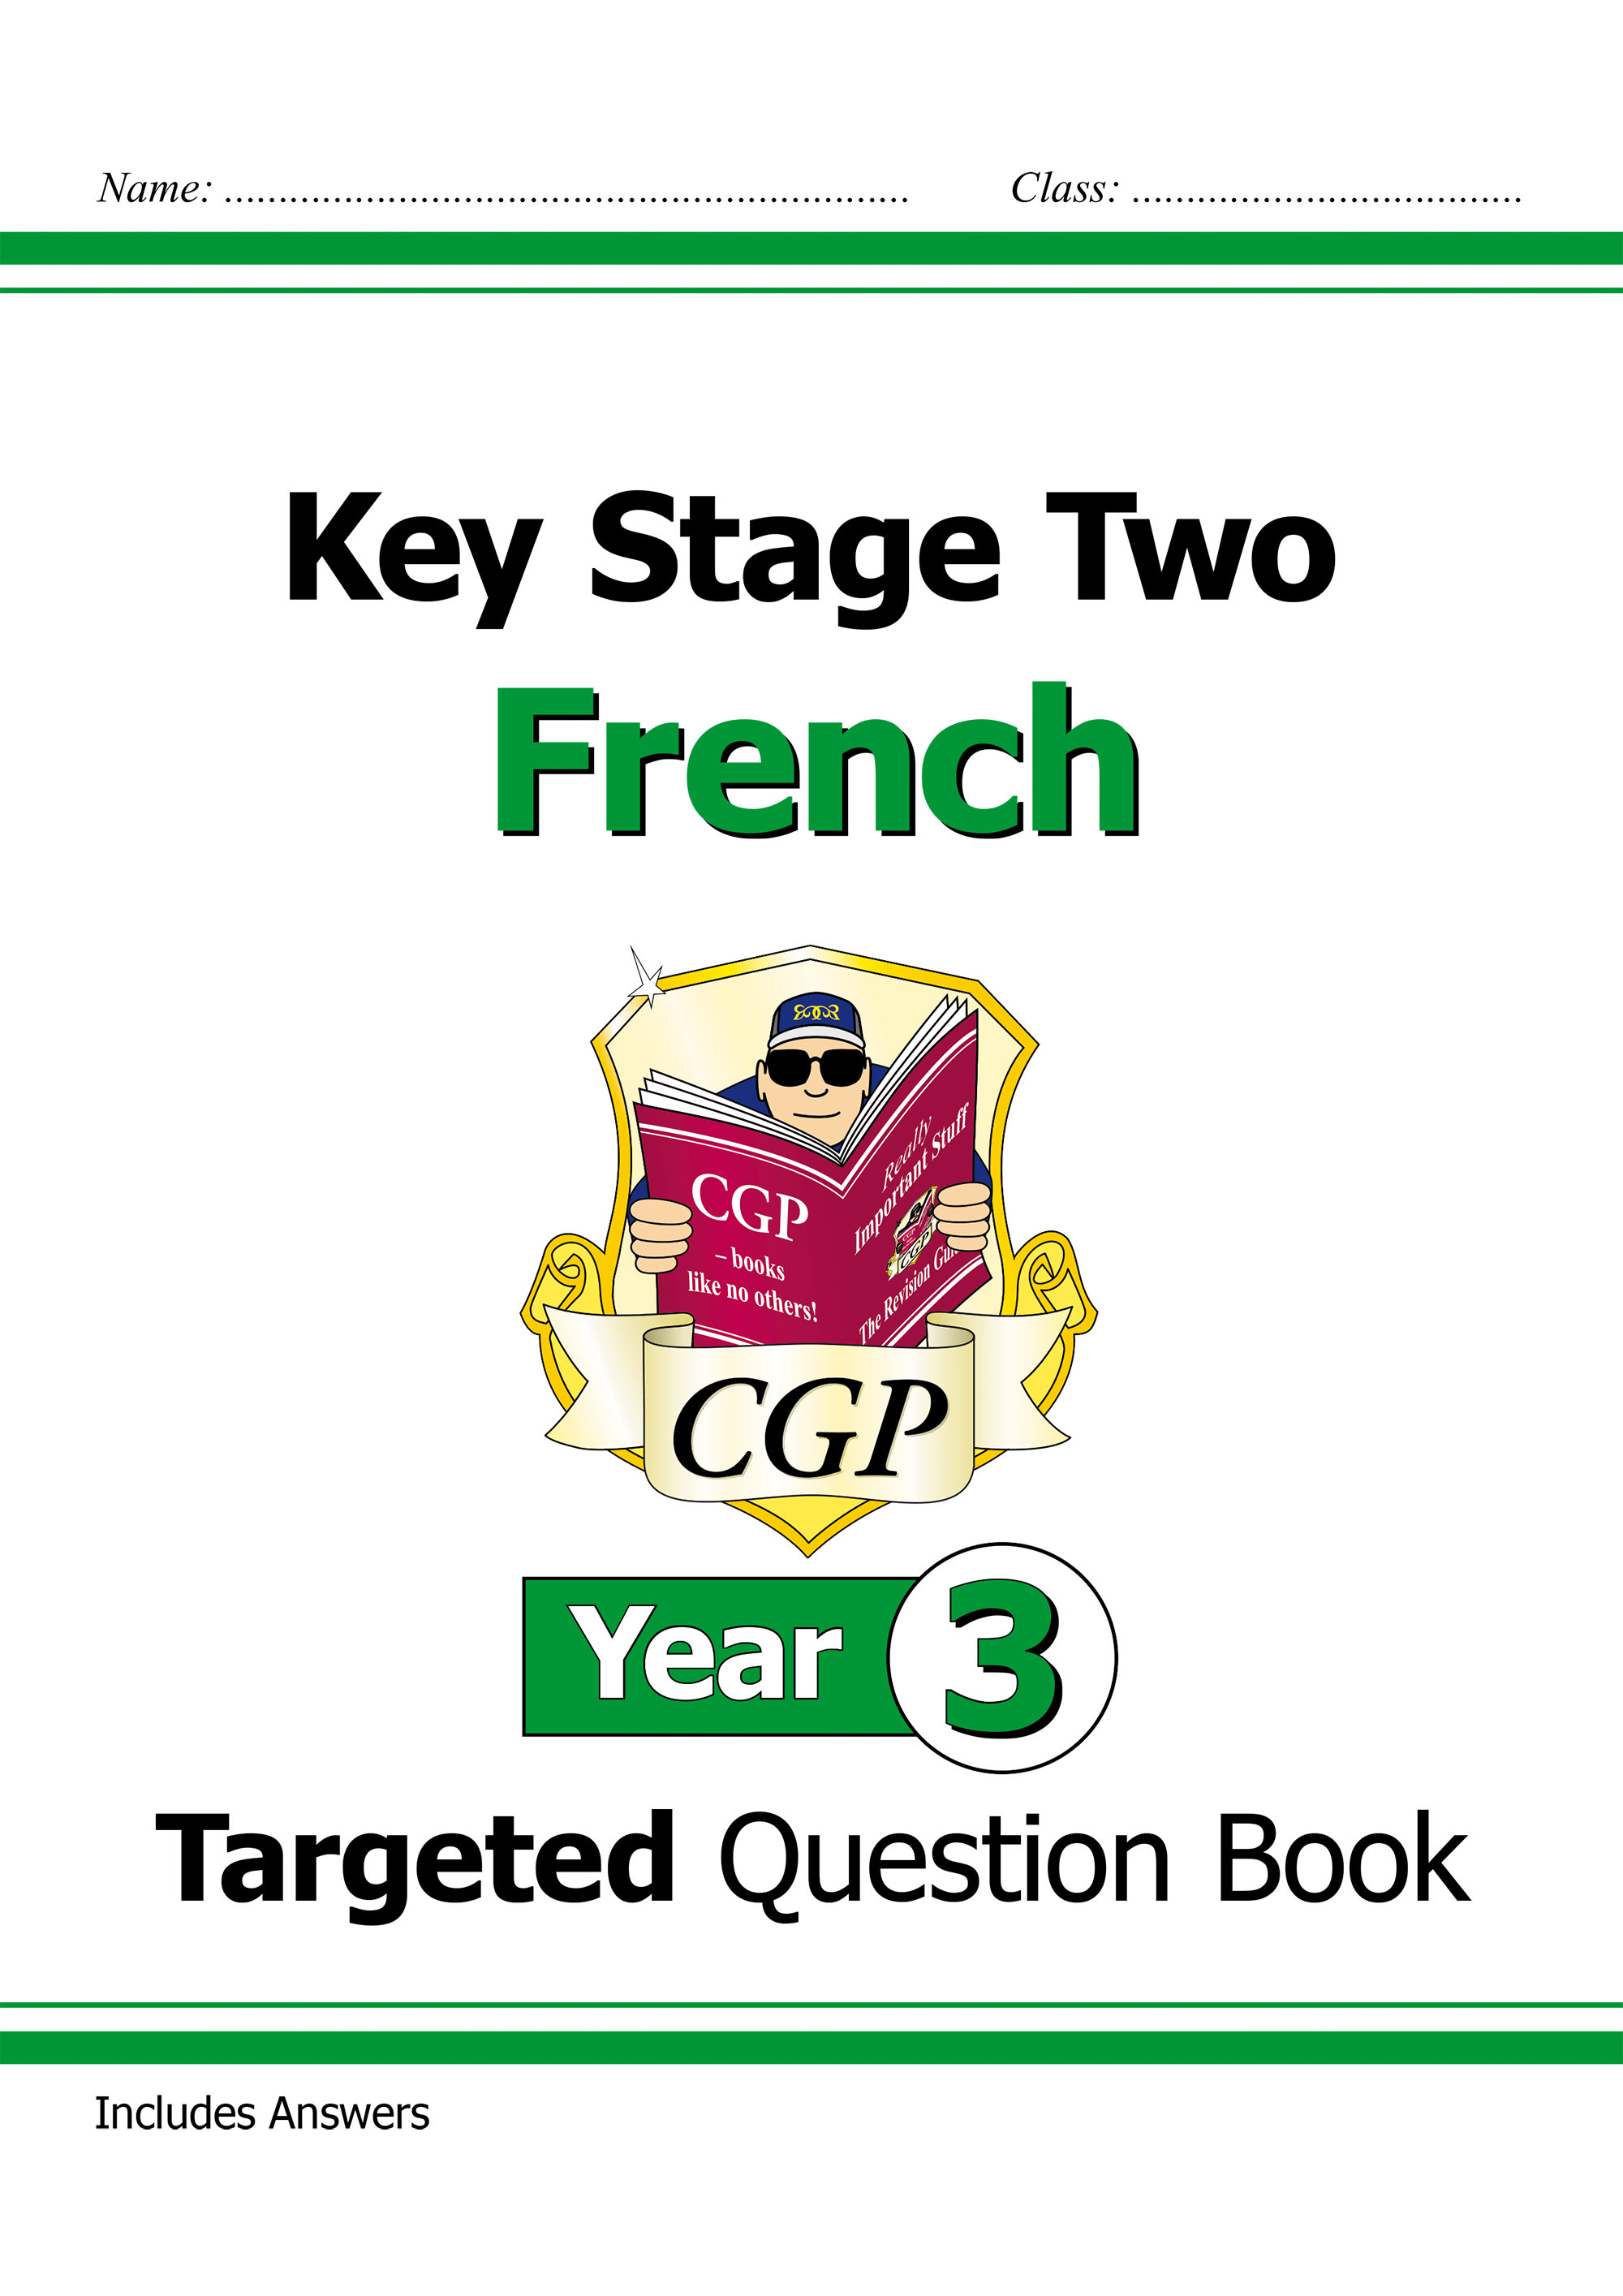 F3Q21D - New KS2 French Targeted Question Book - Year 3